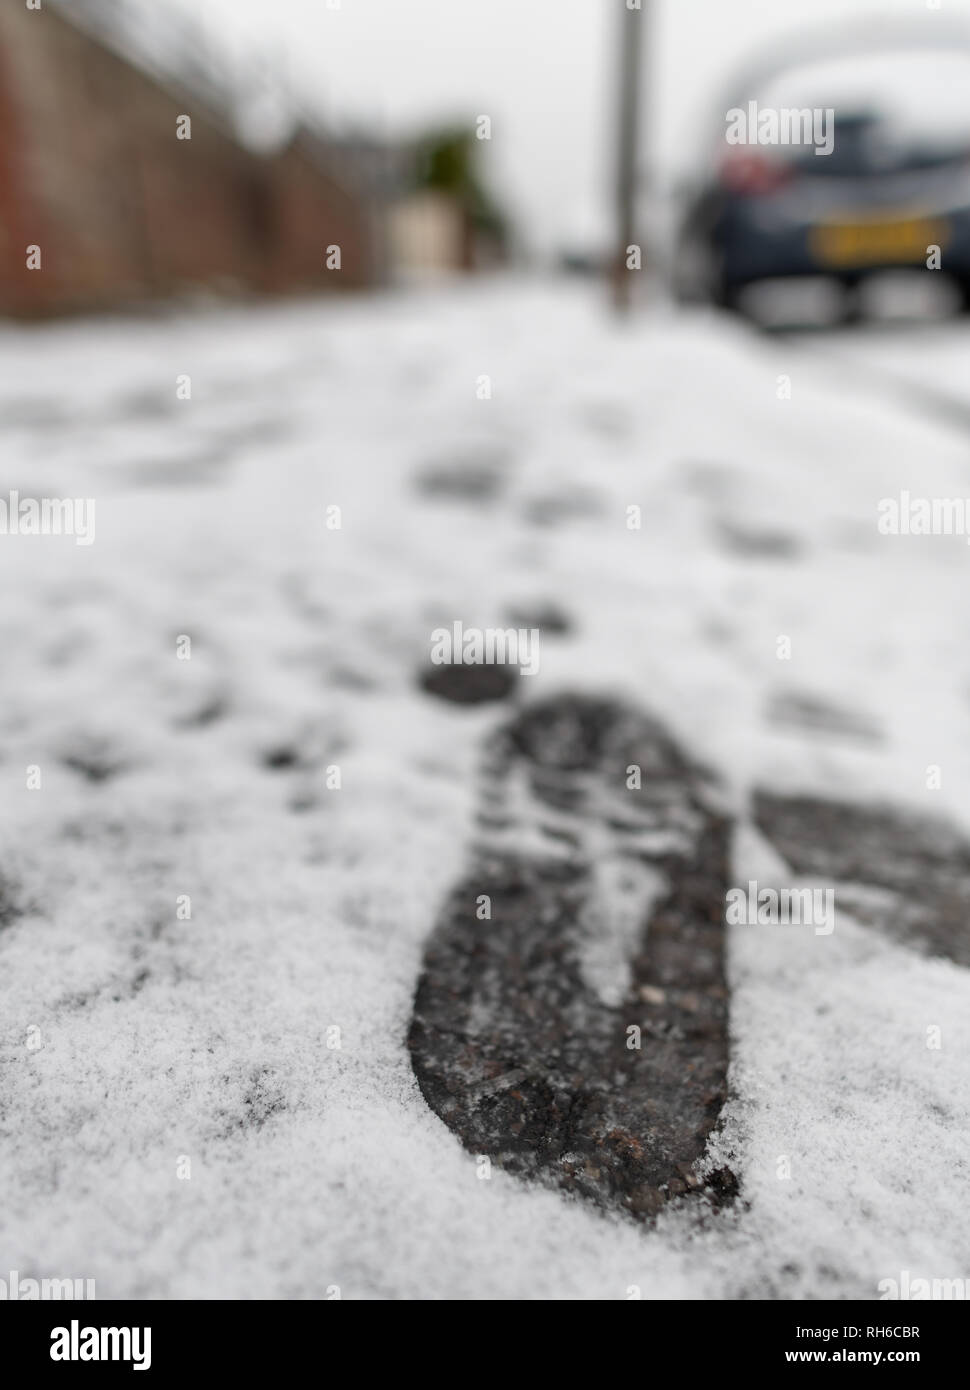 Poole, UK. 1st February 2019. There's snow even in Poole in Dorset, on the south coast of England. Snow in suburbia and footprints on the pavement. Credit: Thomas Faull/Alamy Live News Stock Photo